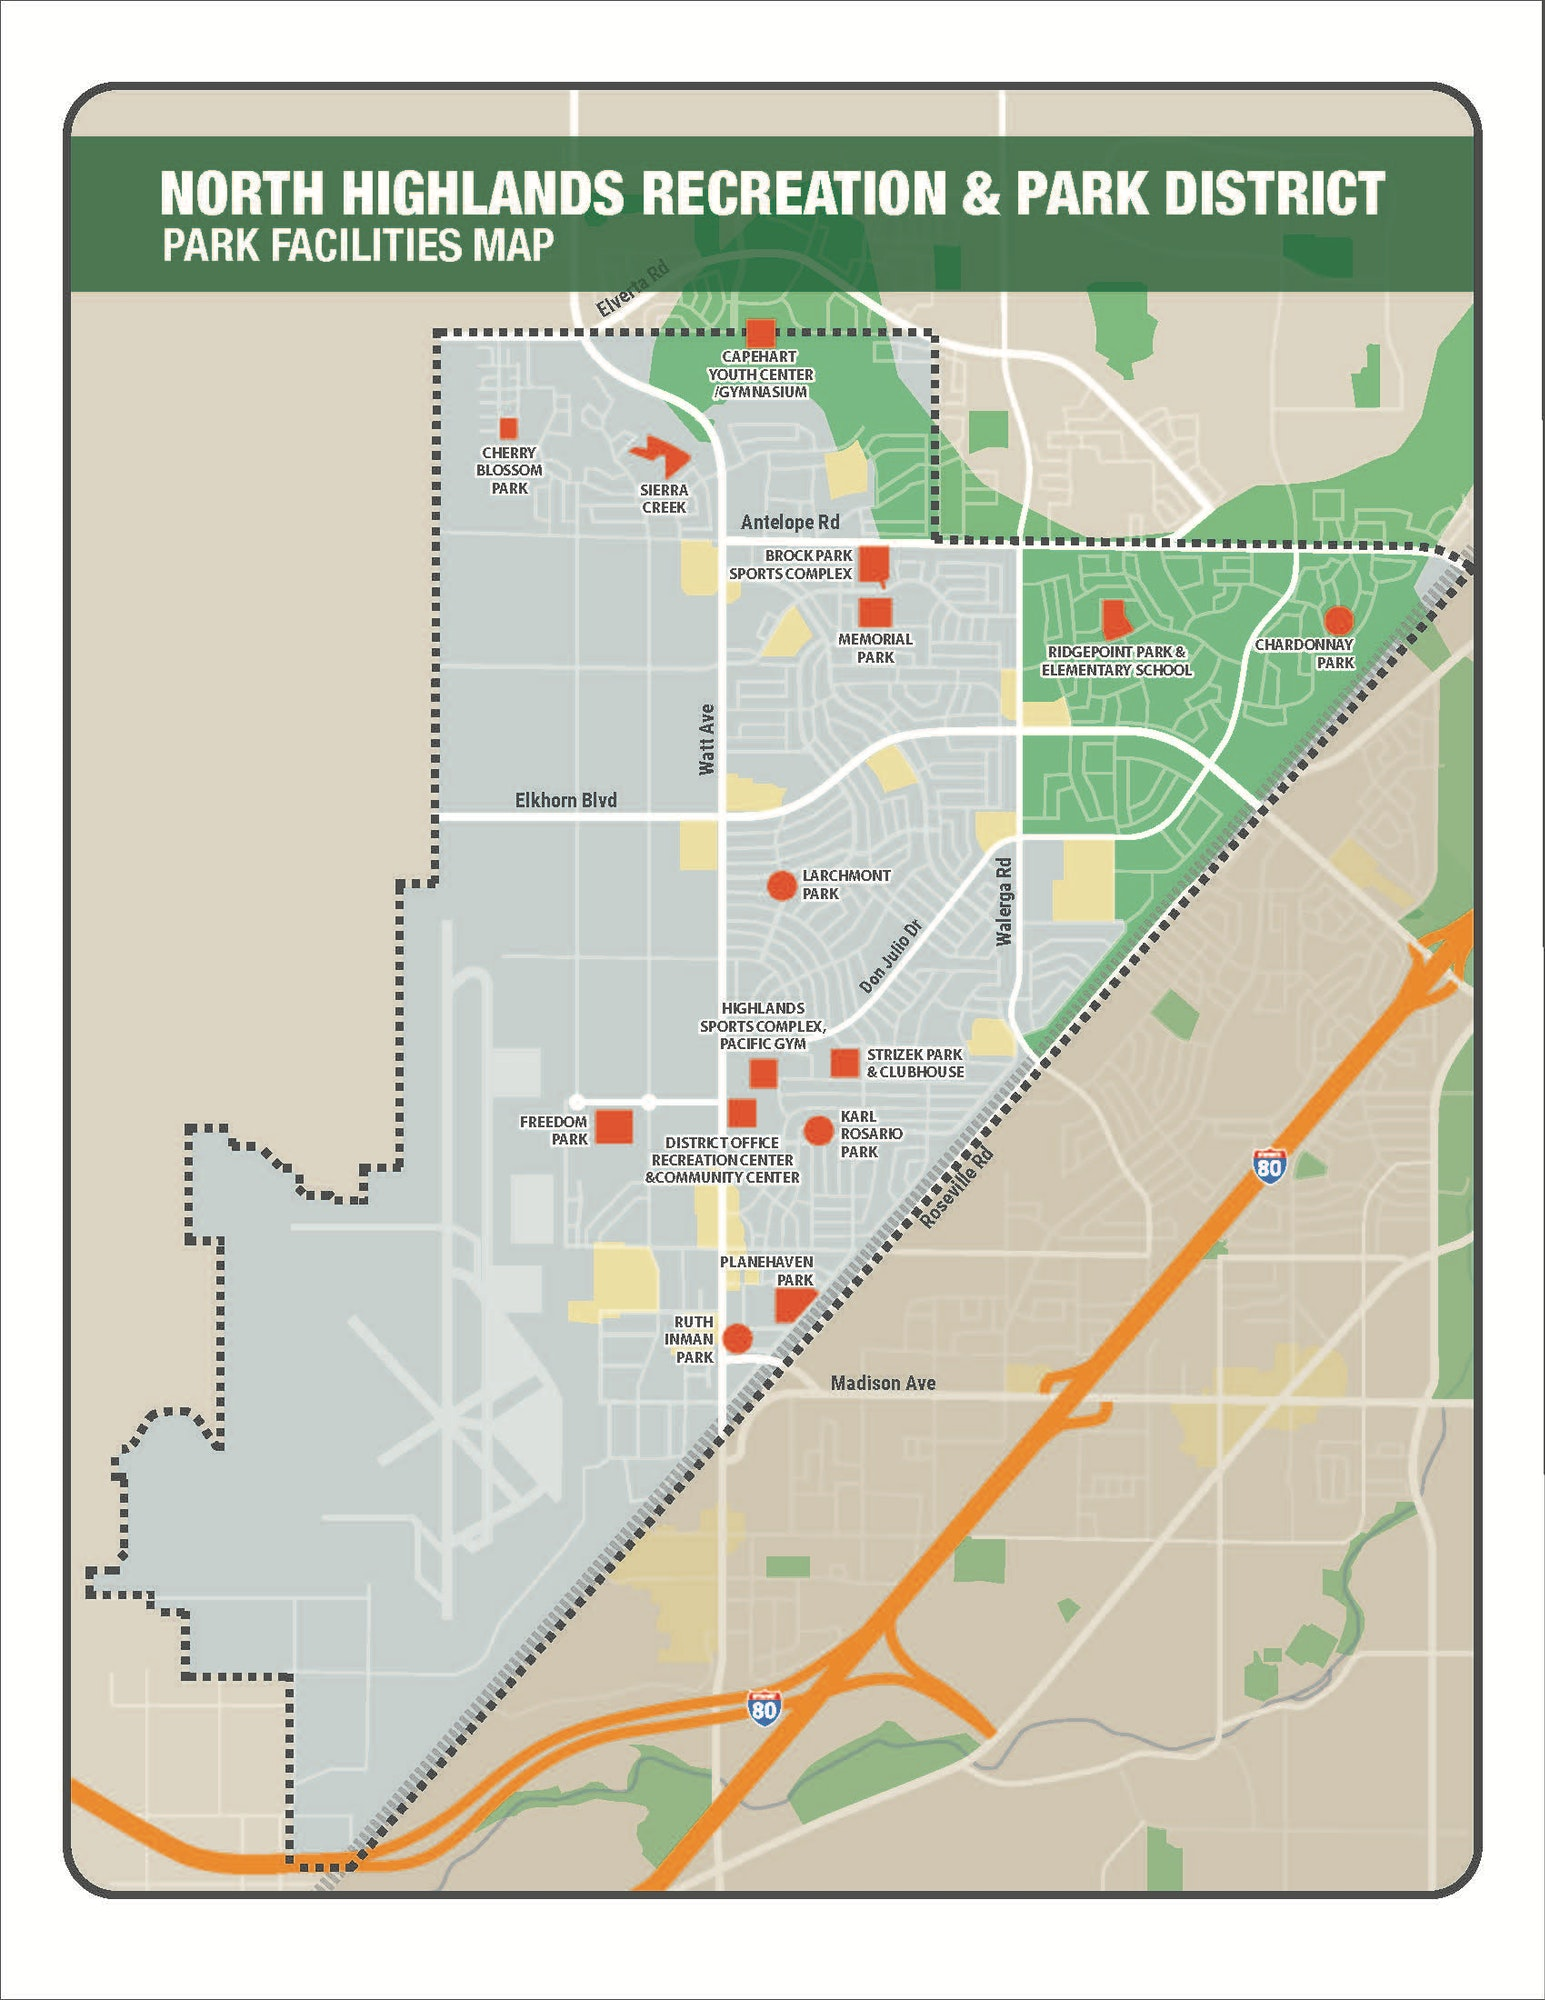 Park and Facility Map